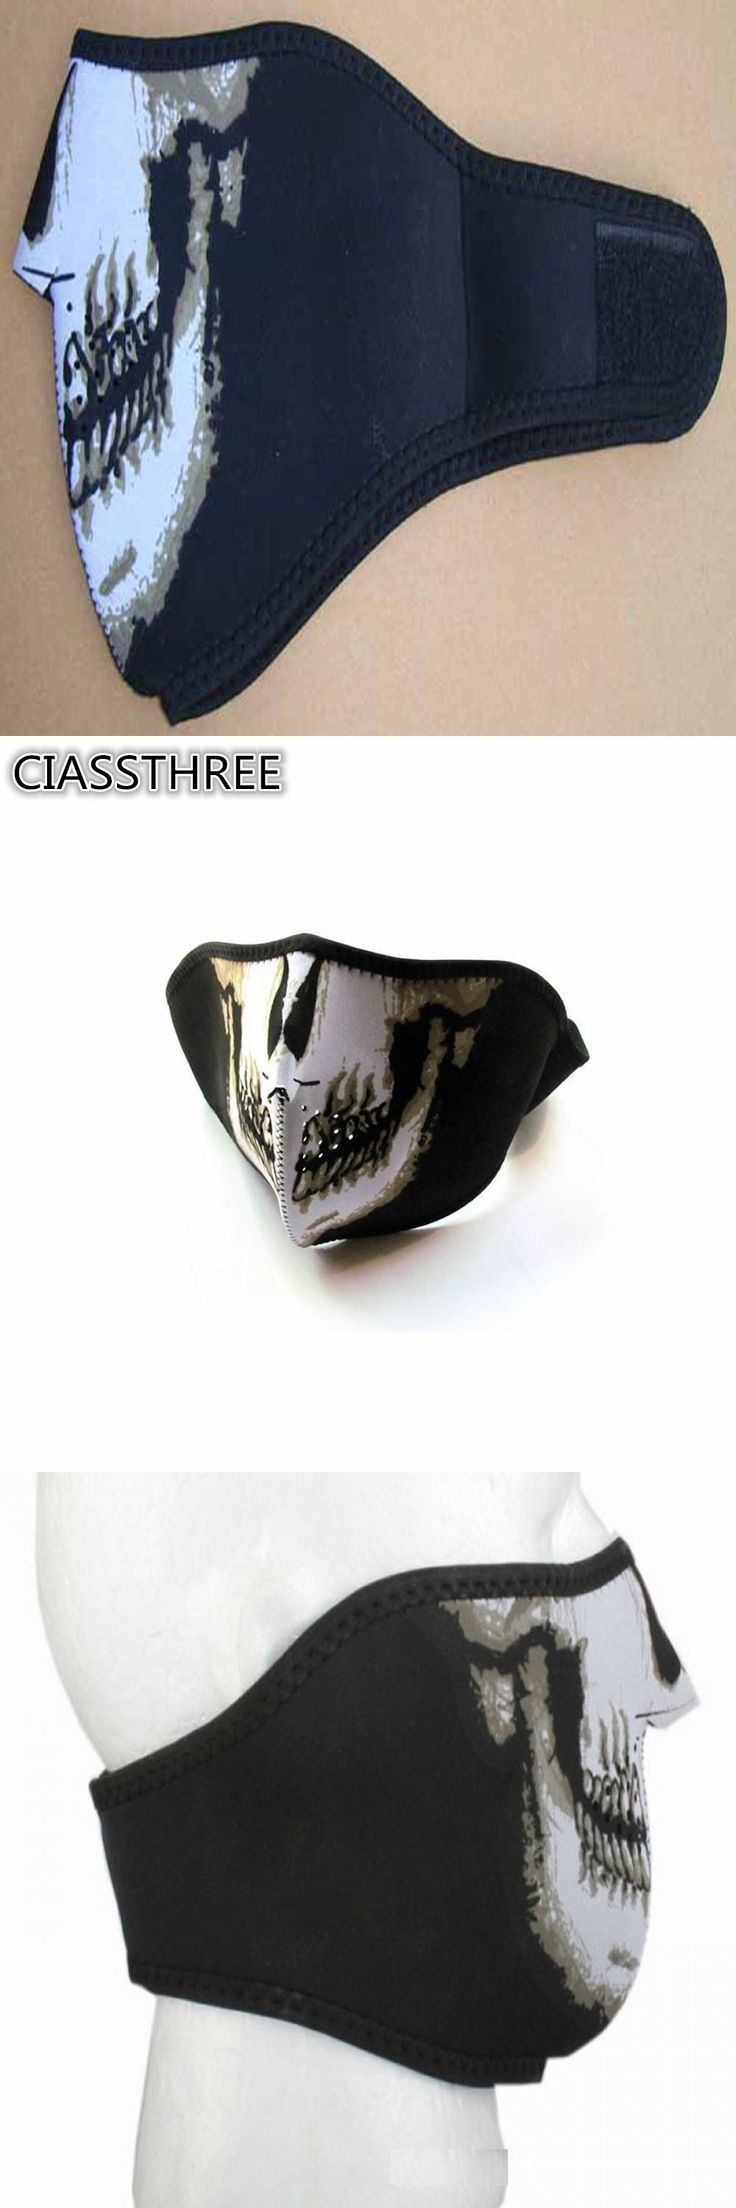 Halloween Skull Skeleton Masks Outdoor Motorcycle Bicycle Multi function Headwear PVC Airsoft Paintball Face Protective Mask